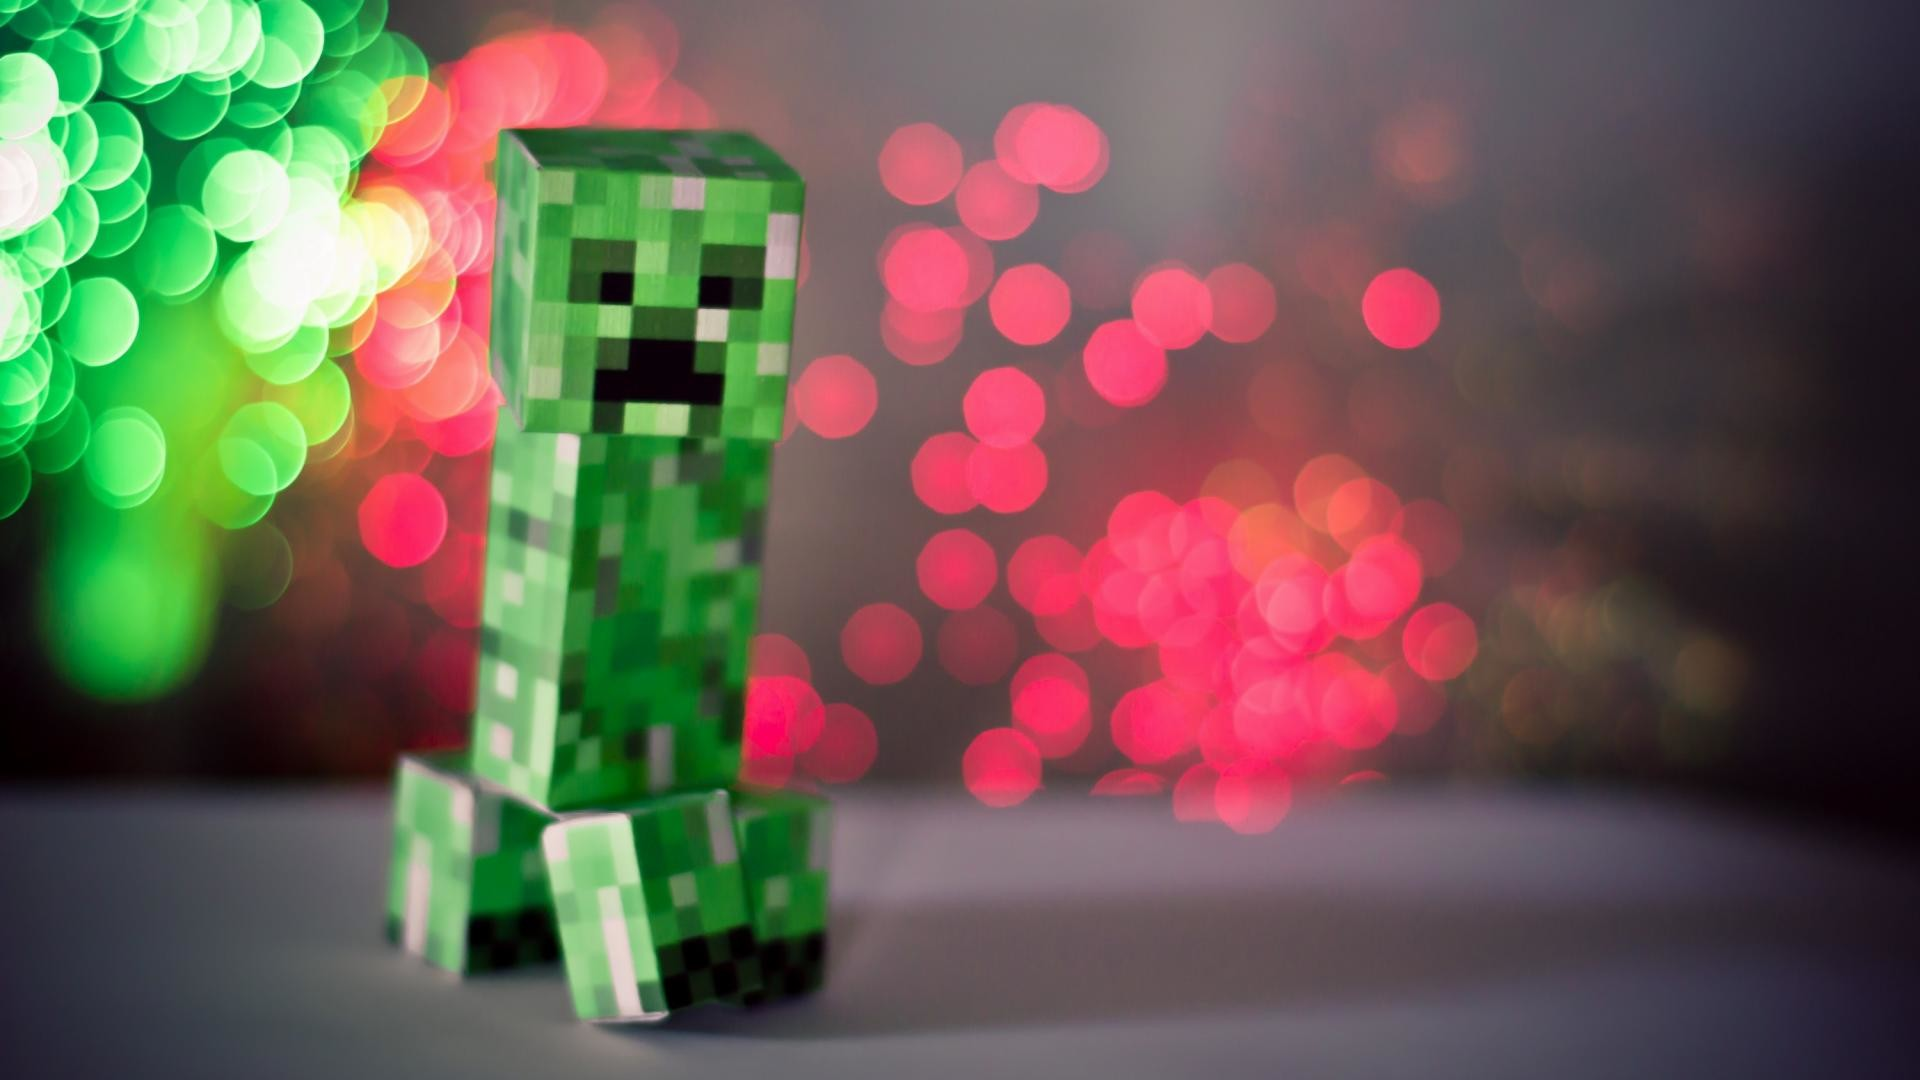 1920x1080 wallpaper.wiki-Minecraft-Creeper-Iphone-Image-Free-Download-